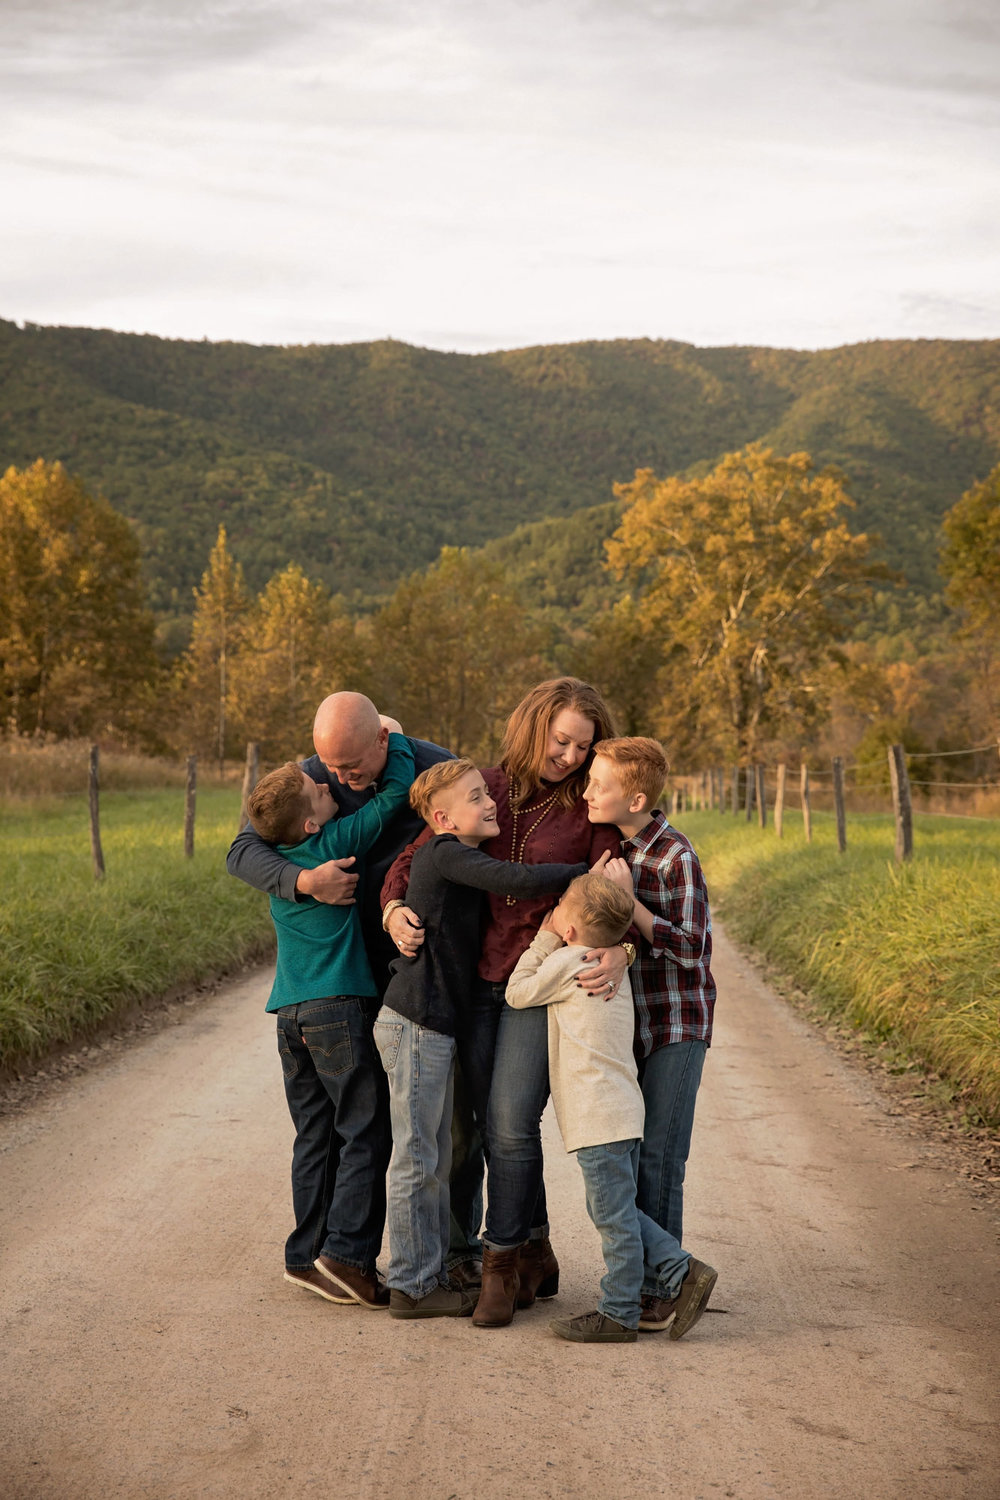 cades-cove-tn-family-picture.jpg